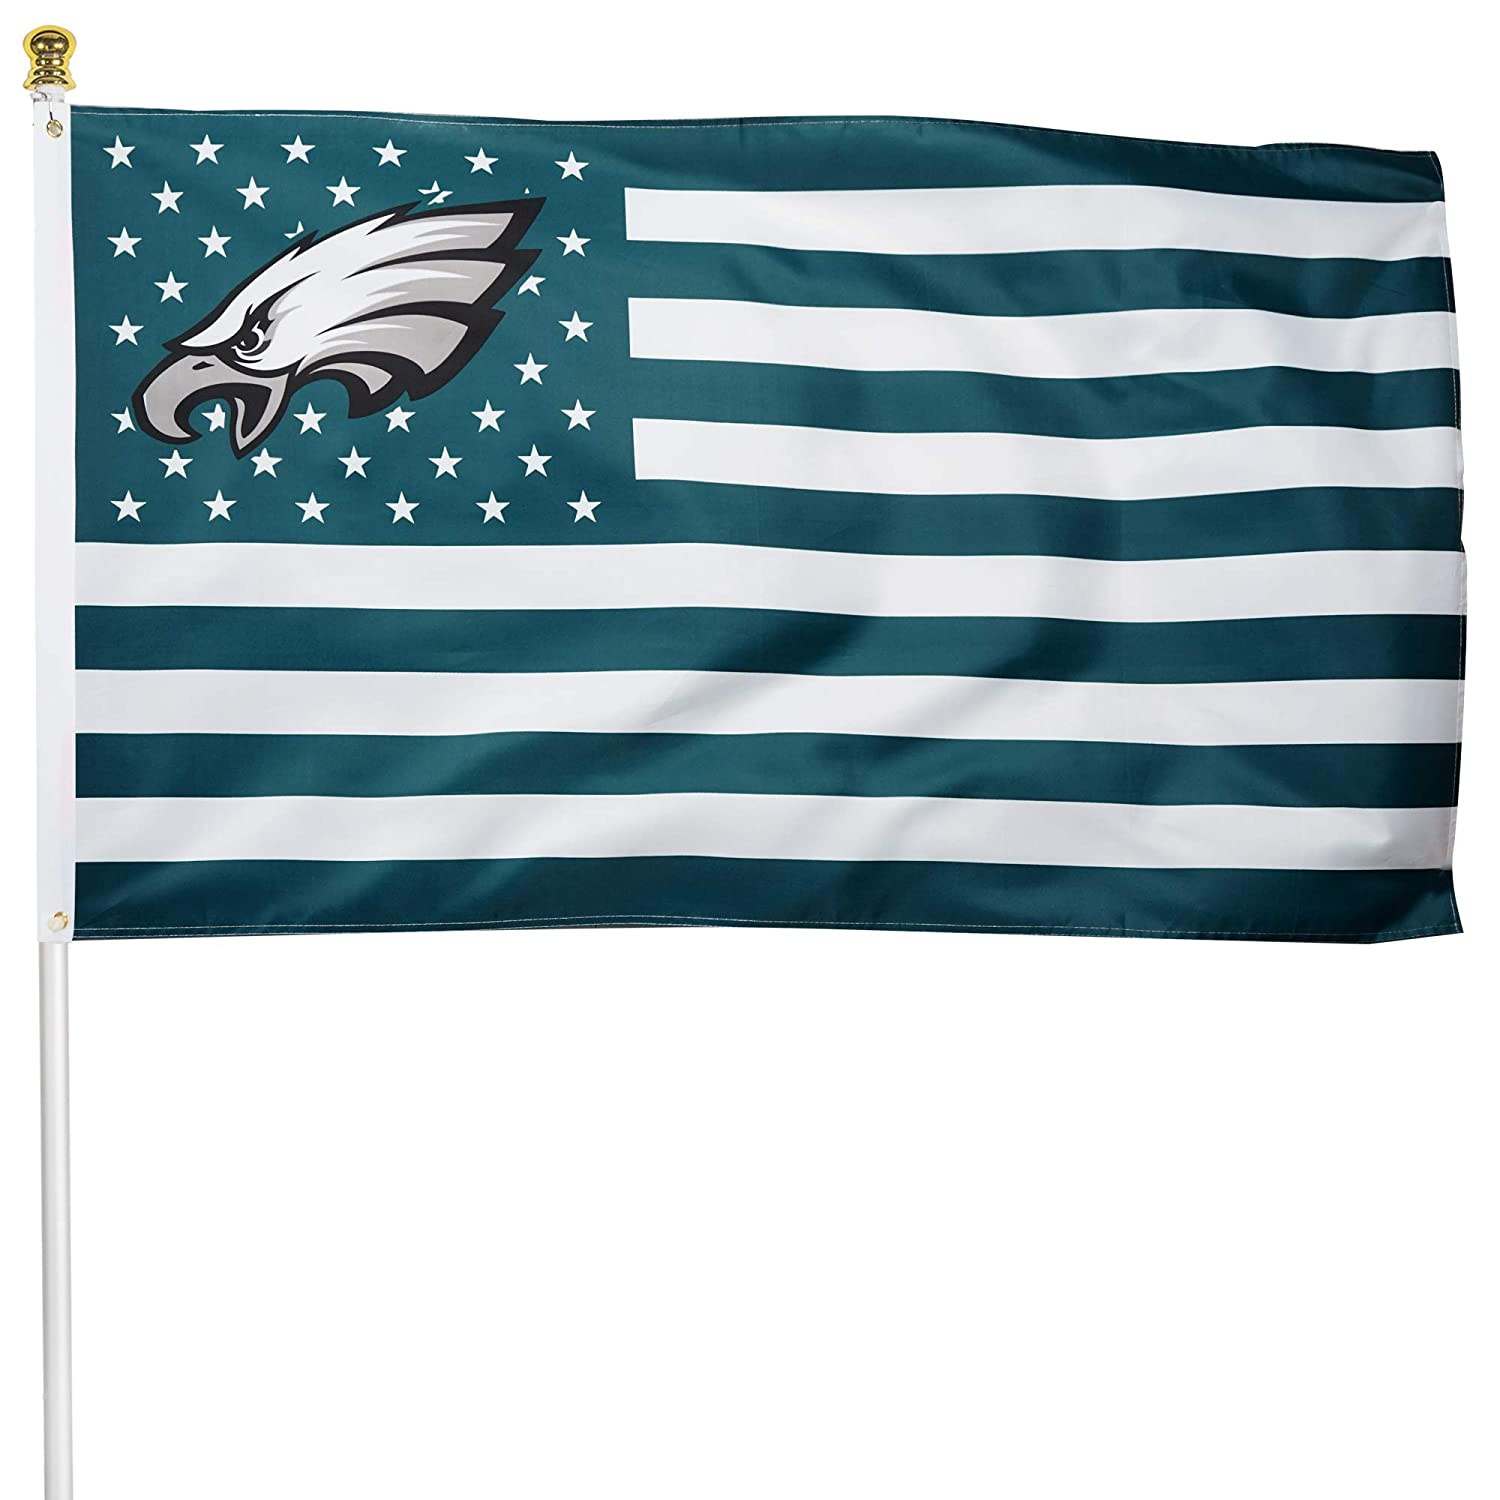 Tanxii Fans Premium Flag for Philadelphia Football Team 150D Thick Quality Polyester 3x5 FT Poster USA Stars and Stripes Sports Banner